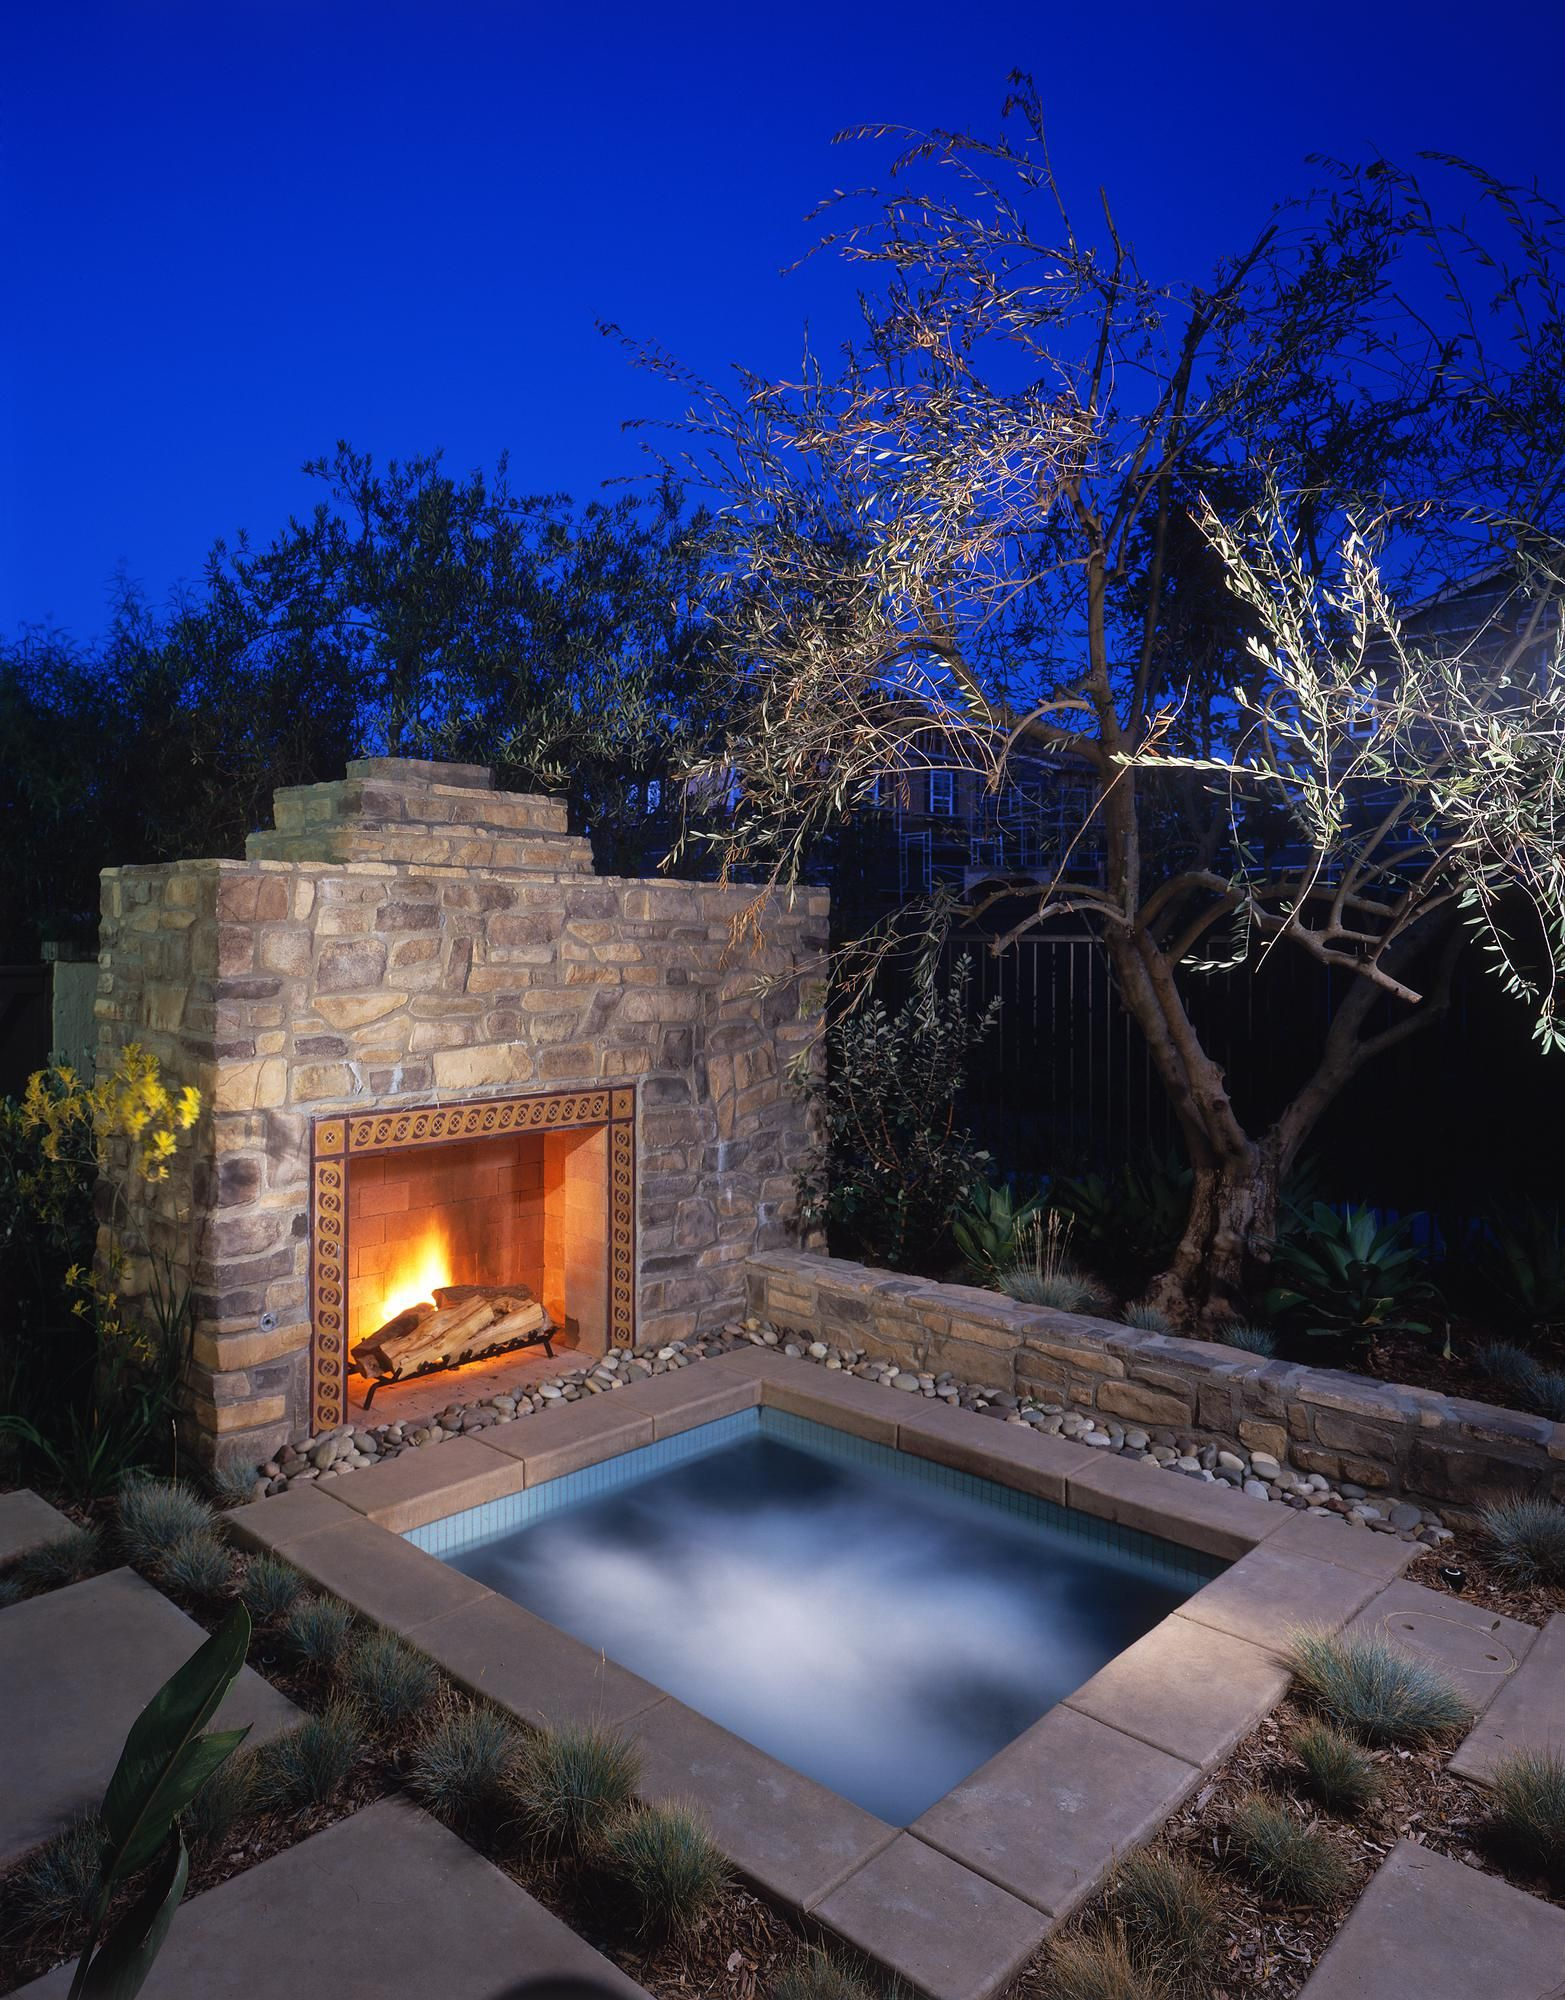 Hot Tub With Fireplace Great For A Small Backyard Or A Small Bank